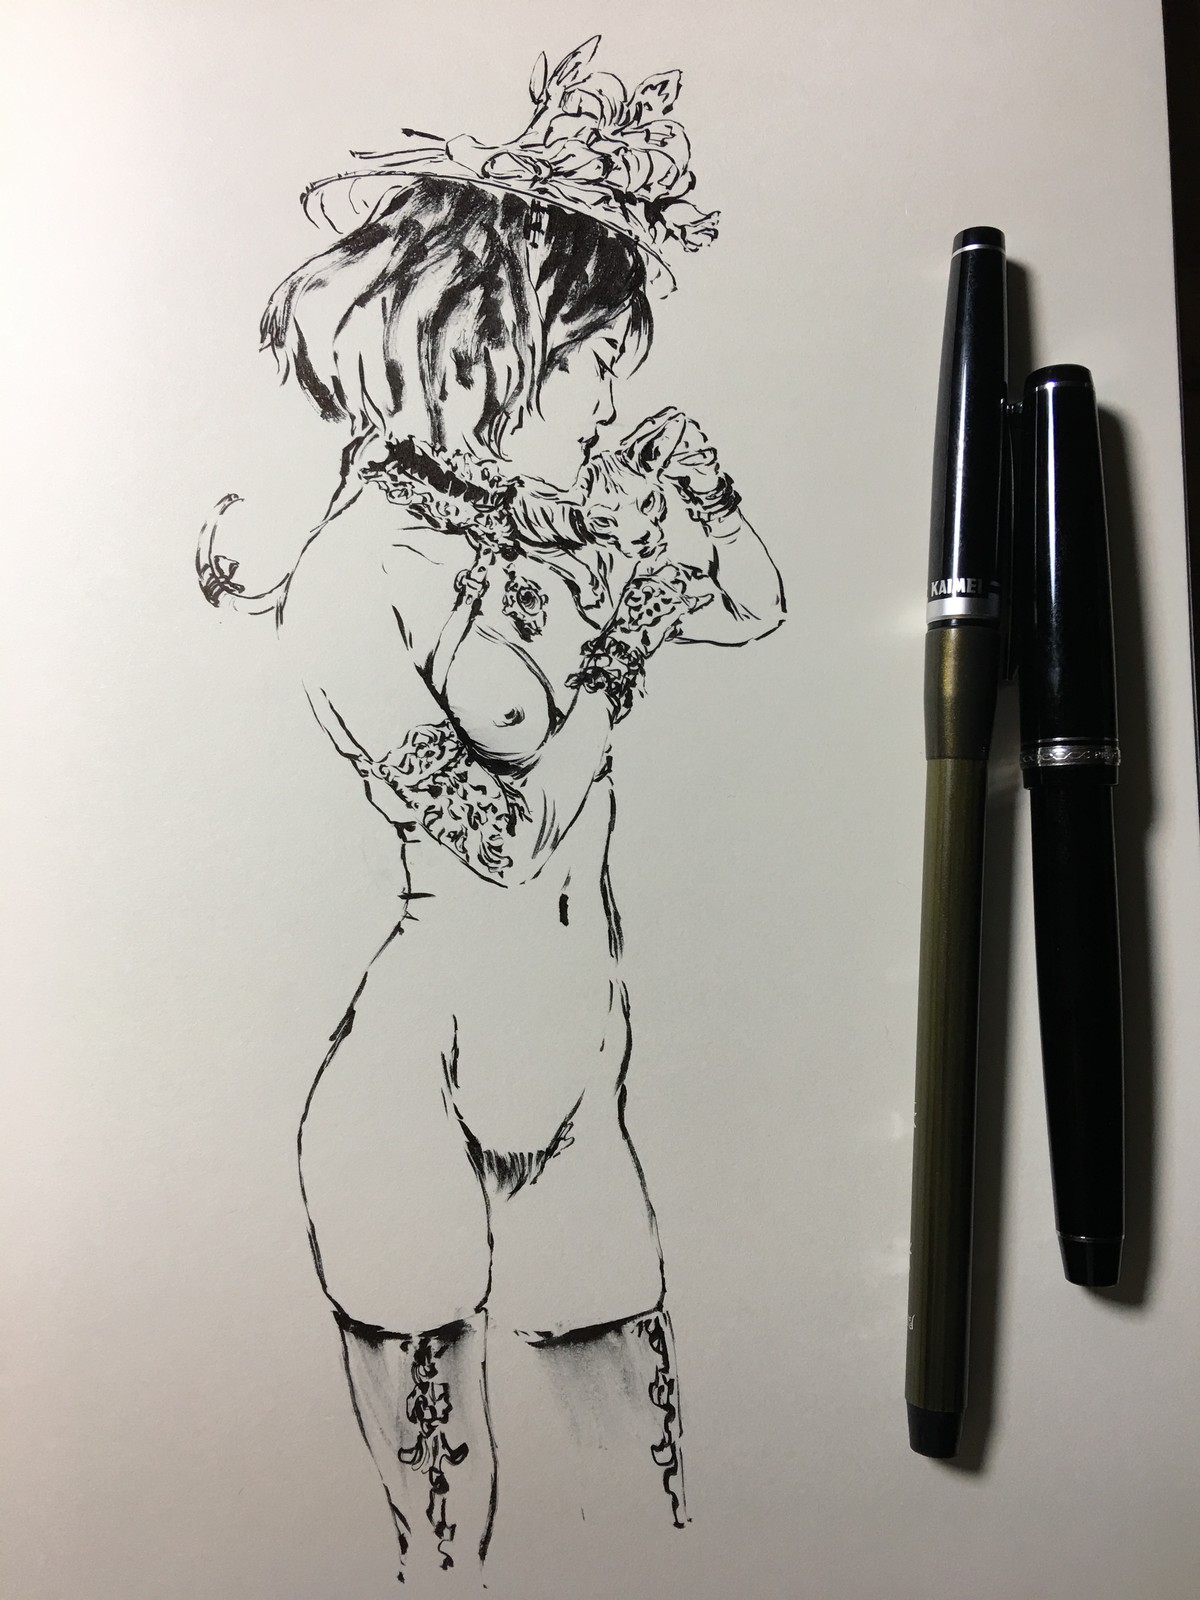 INKTOBER - BRUSHED GIRLS #2